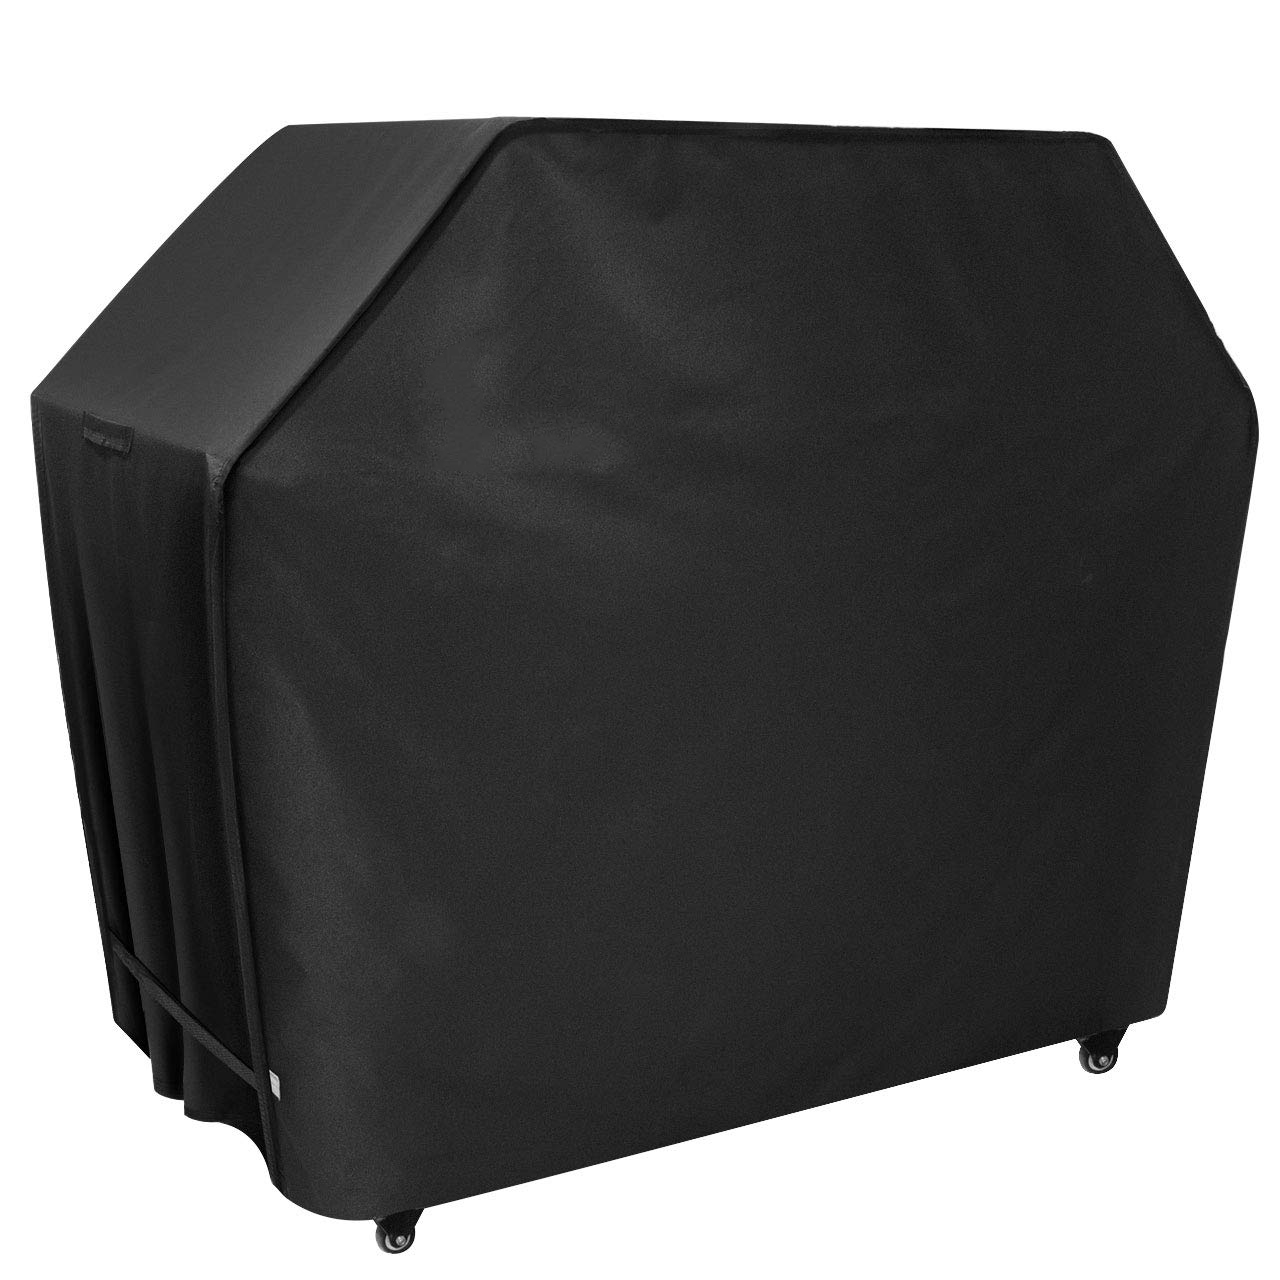 MANQIAN outdoor BBQ Grill Cover Outdoor Waterdichte Heavy Duty Barbecue Gas Grill Cover